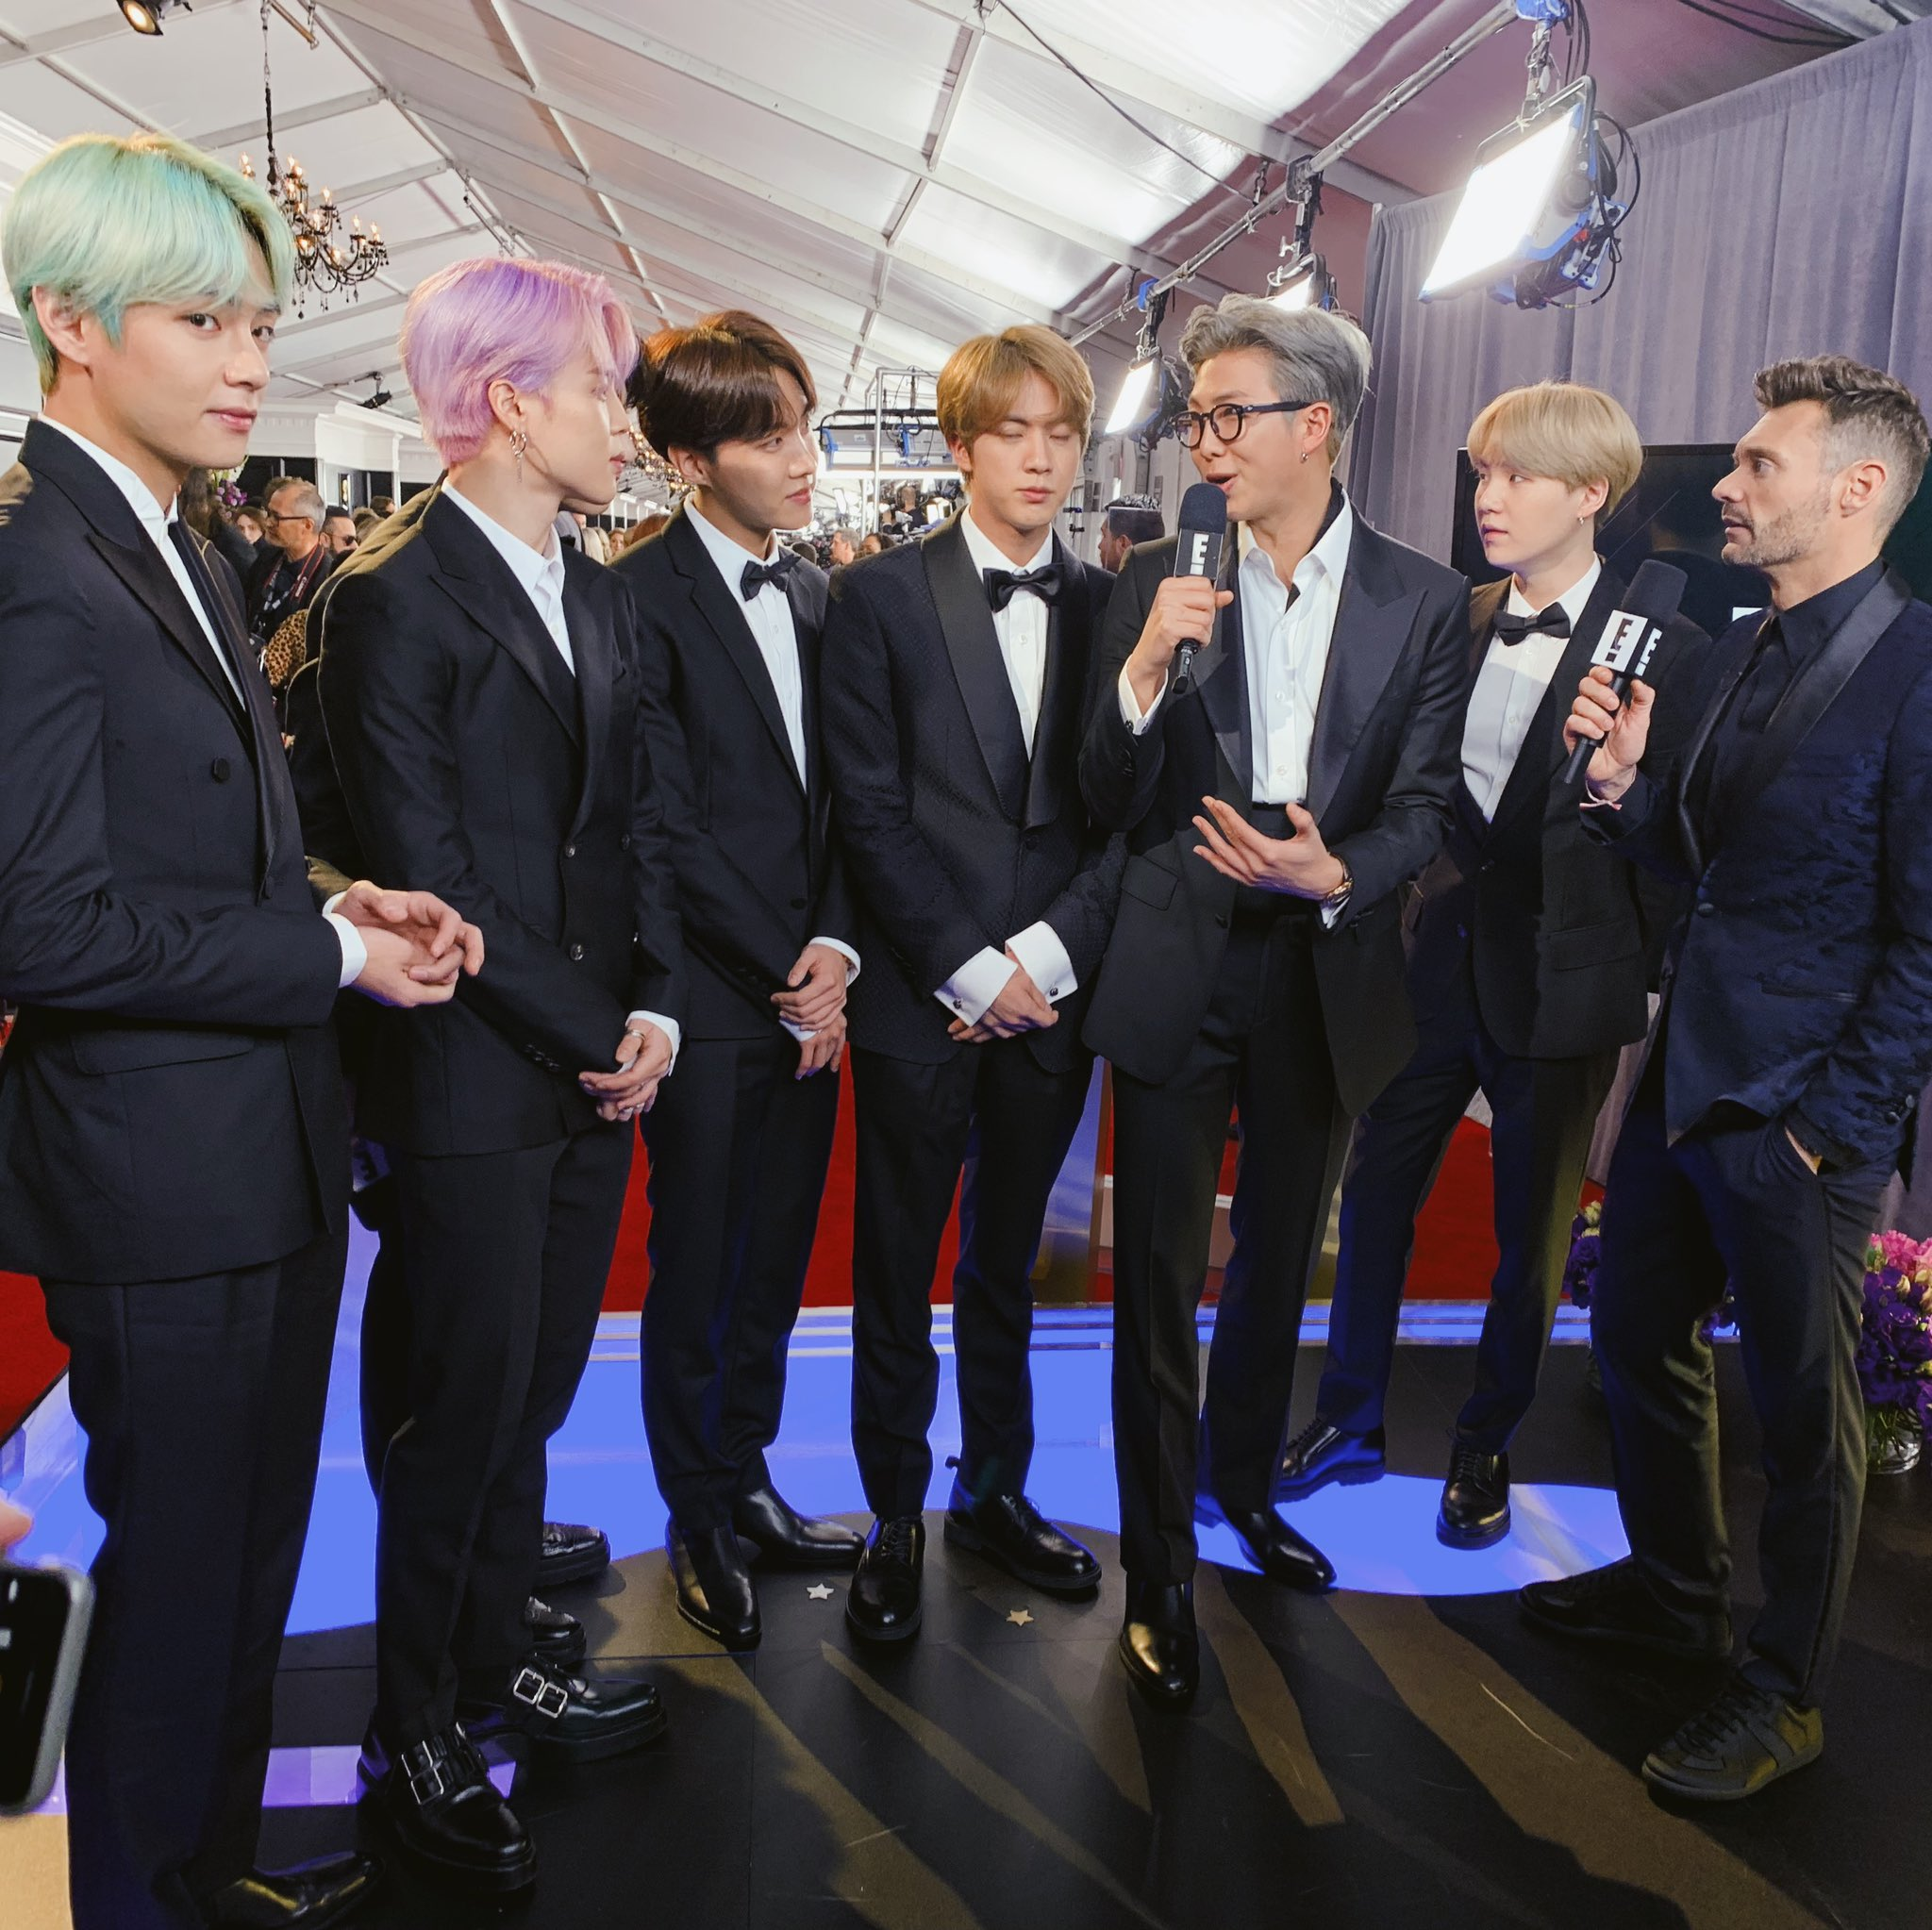 .@BTS_TWT's first #Grammys! It's all part of their global takeover. Welcome! #ERedCarpet #BTSARMY #BTSxGrammys https://t.co/zBRt1SKFq3